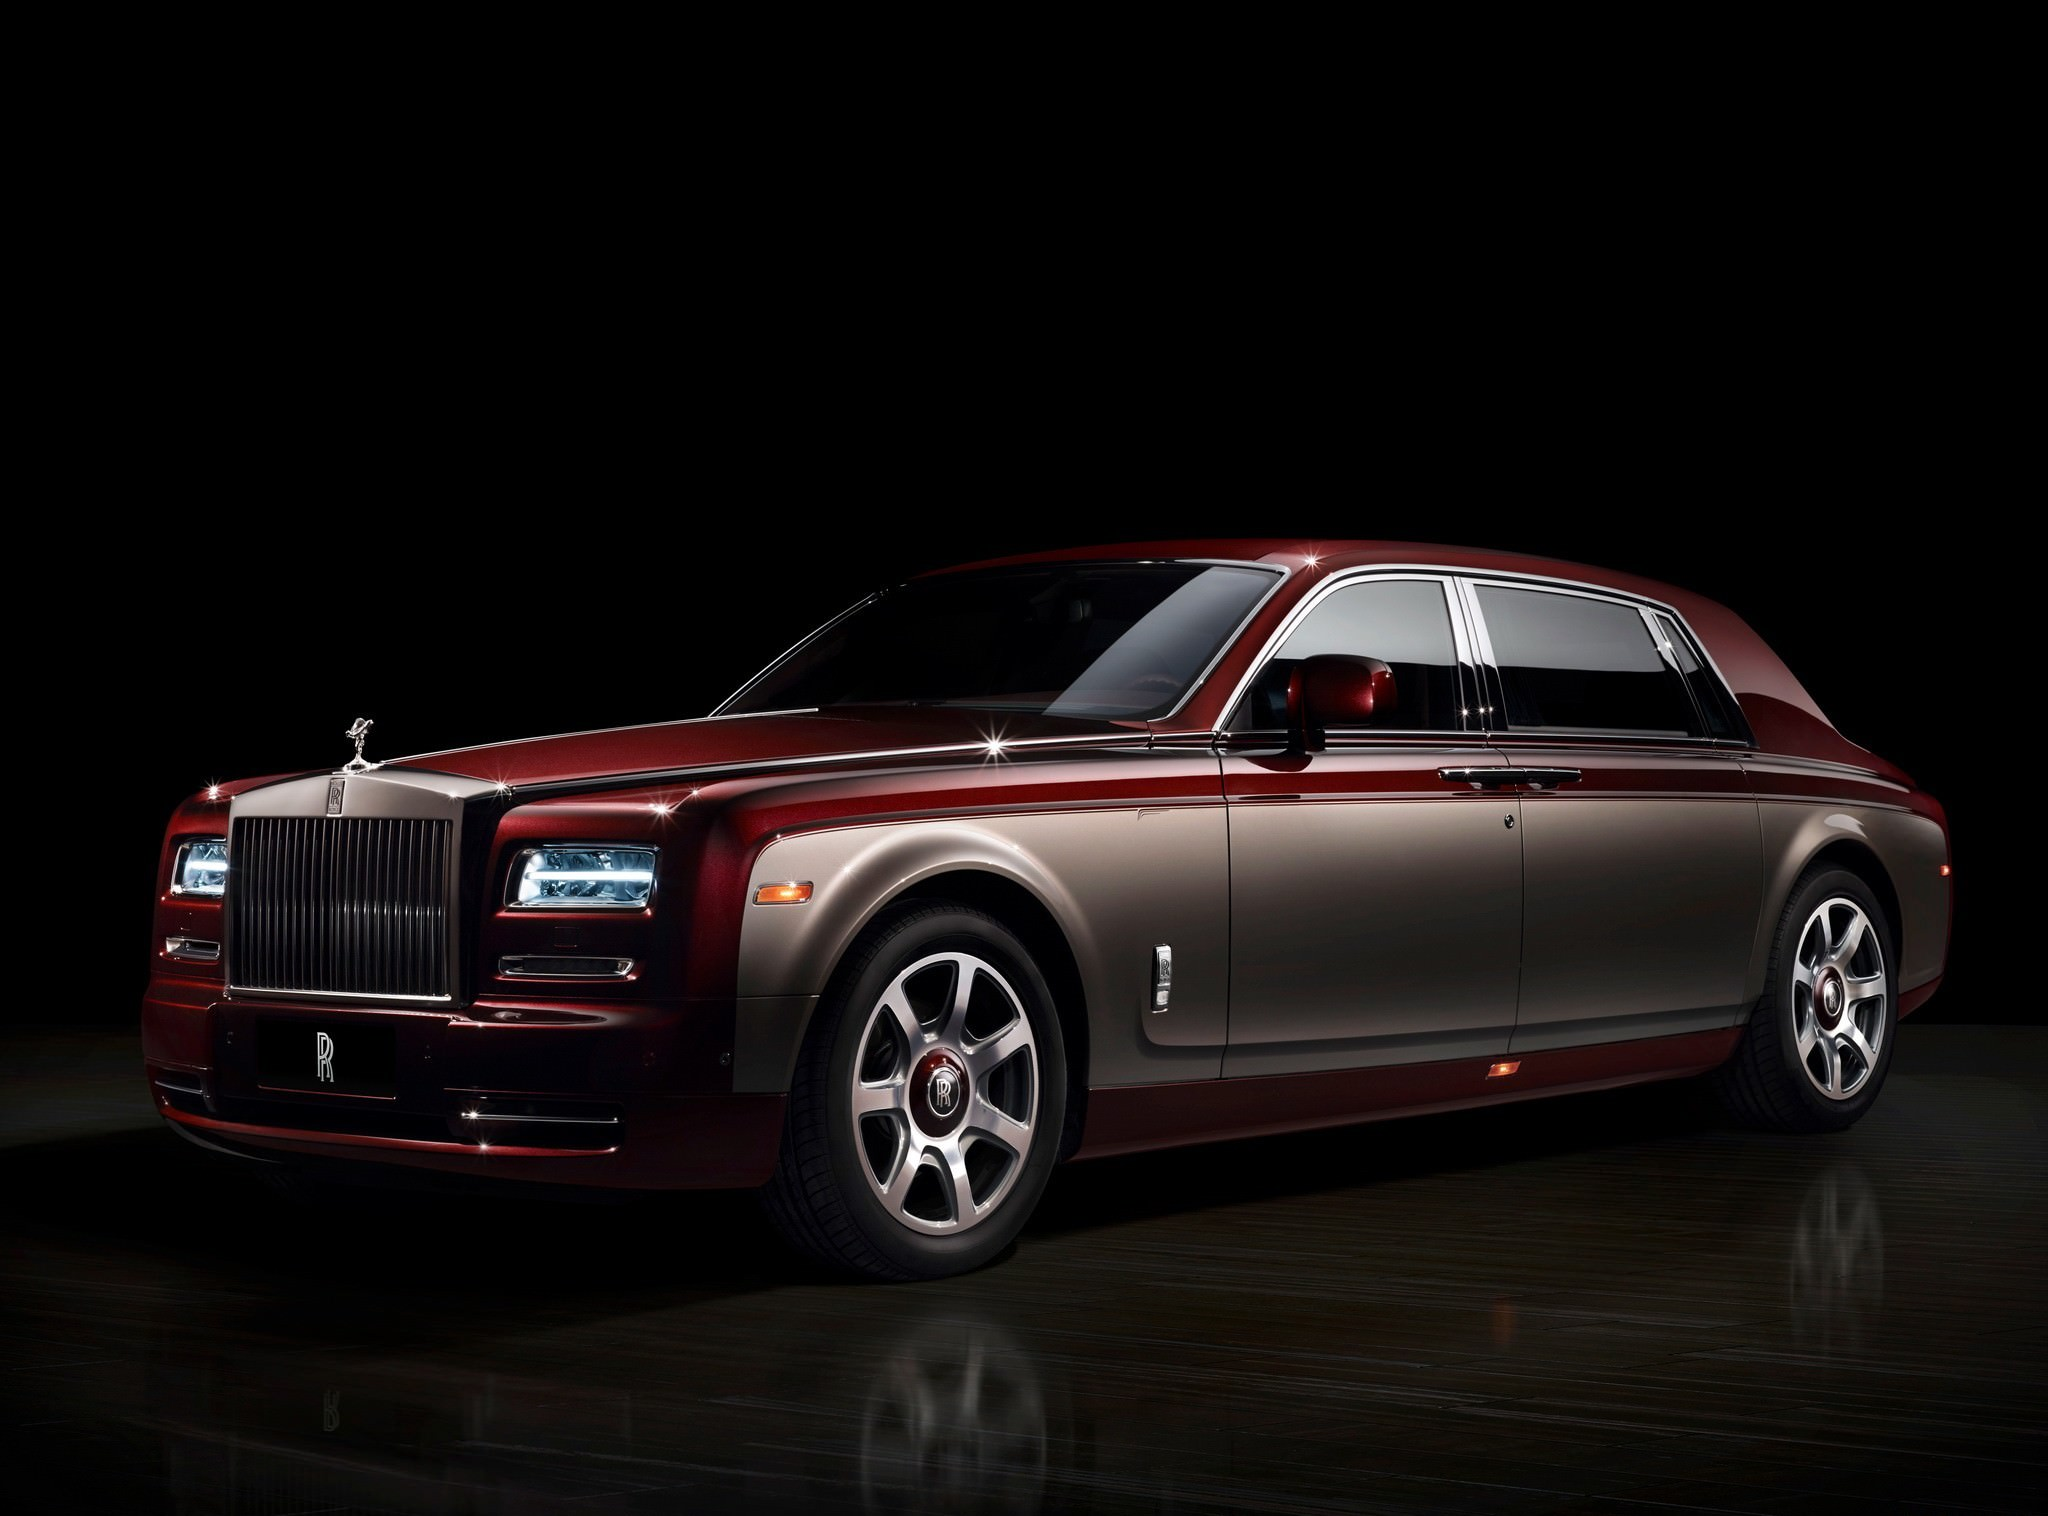 Elegant Rolls Royce Car Background